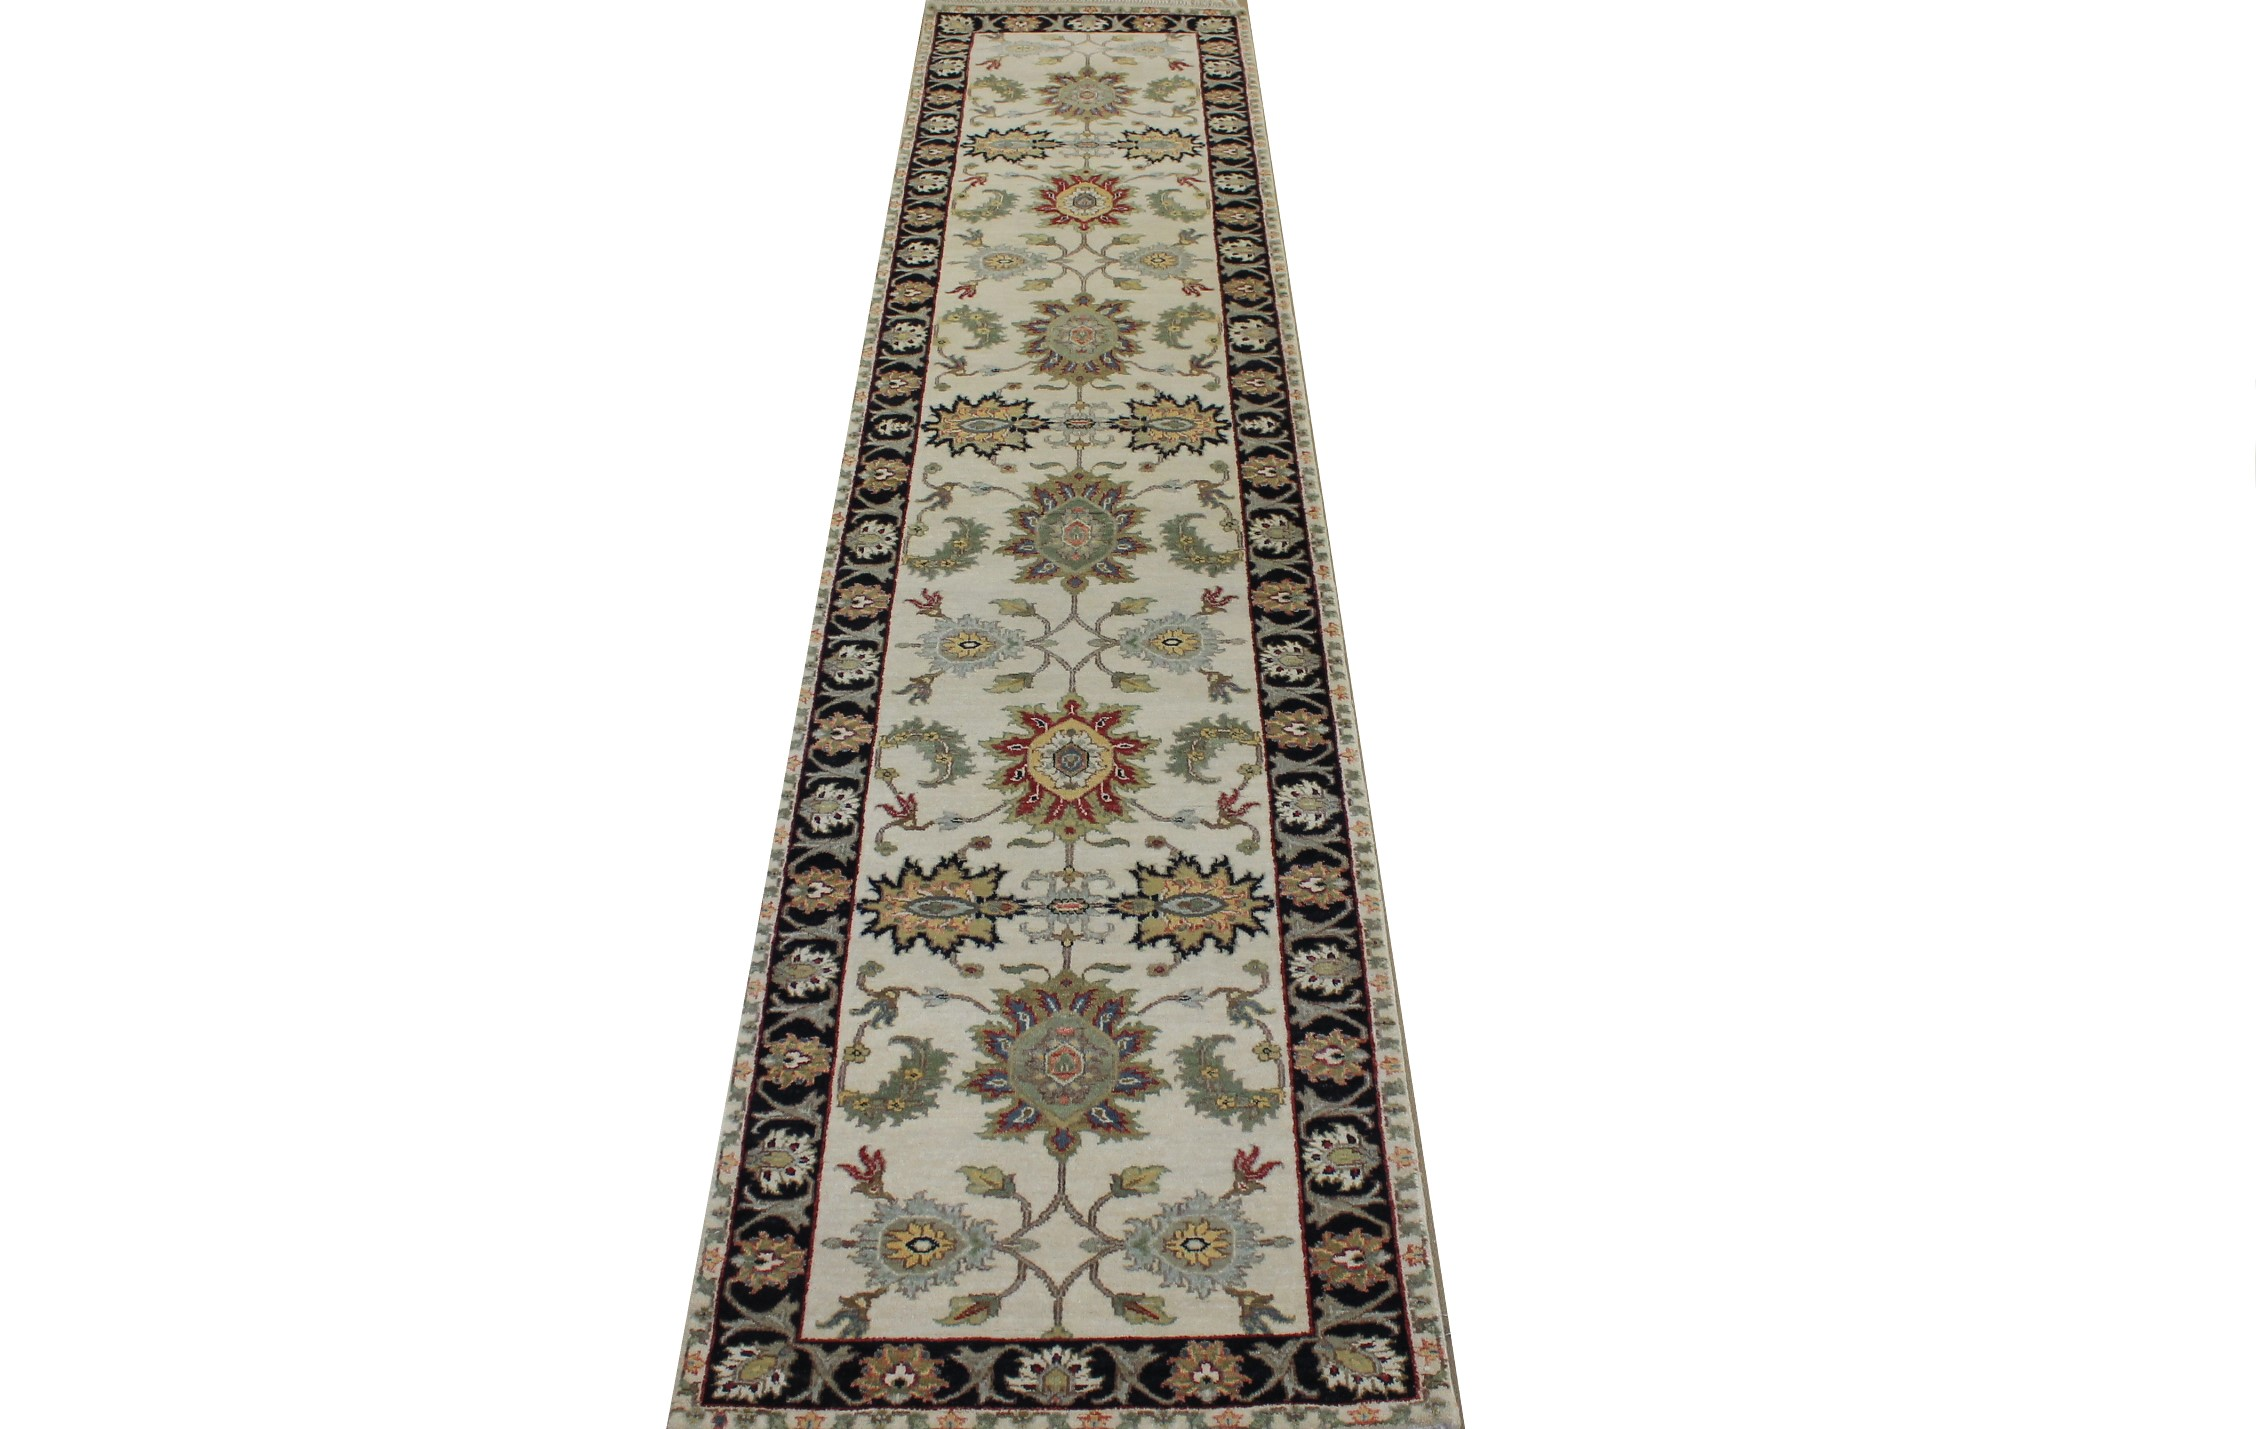 12 ft. Runner Traditional Hand Knotted Wool Area Rug - MR024043